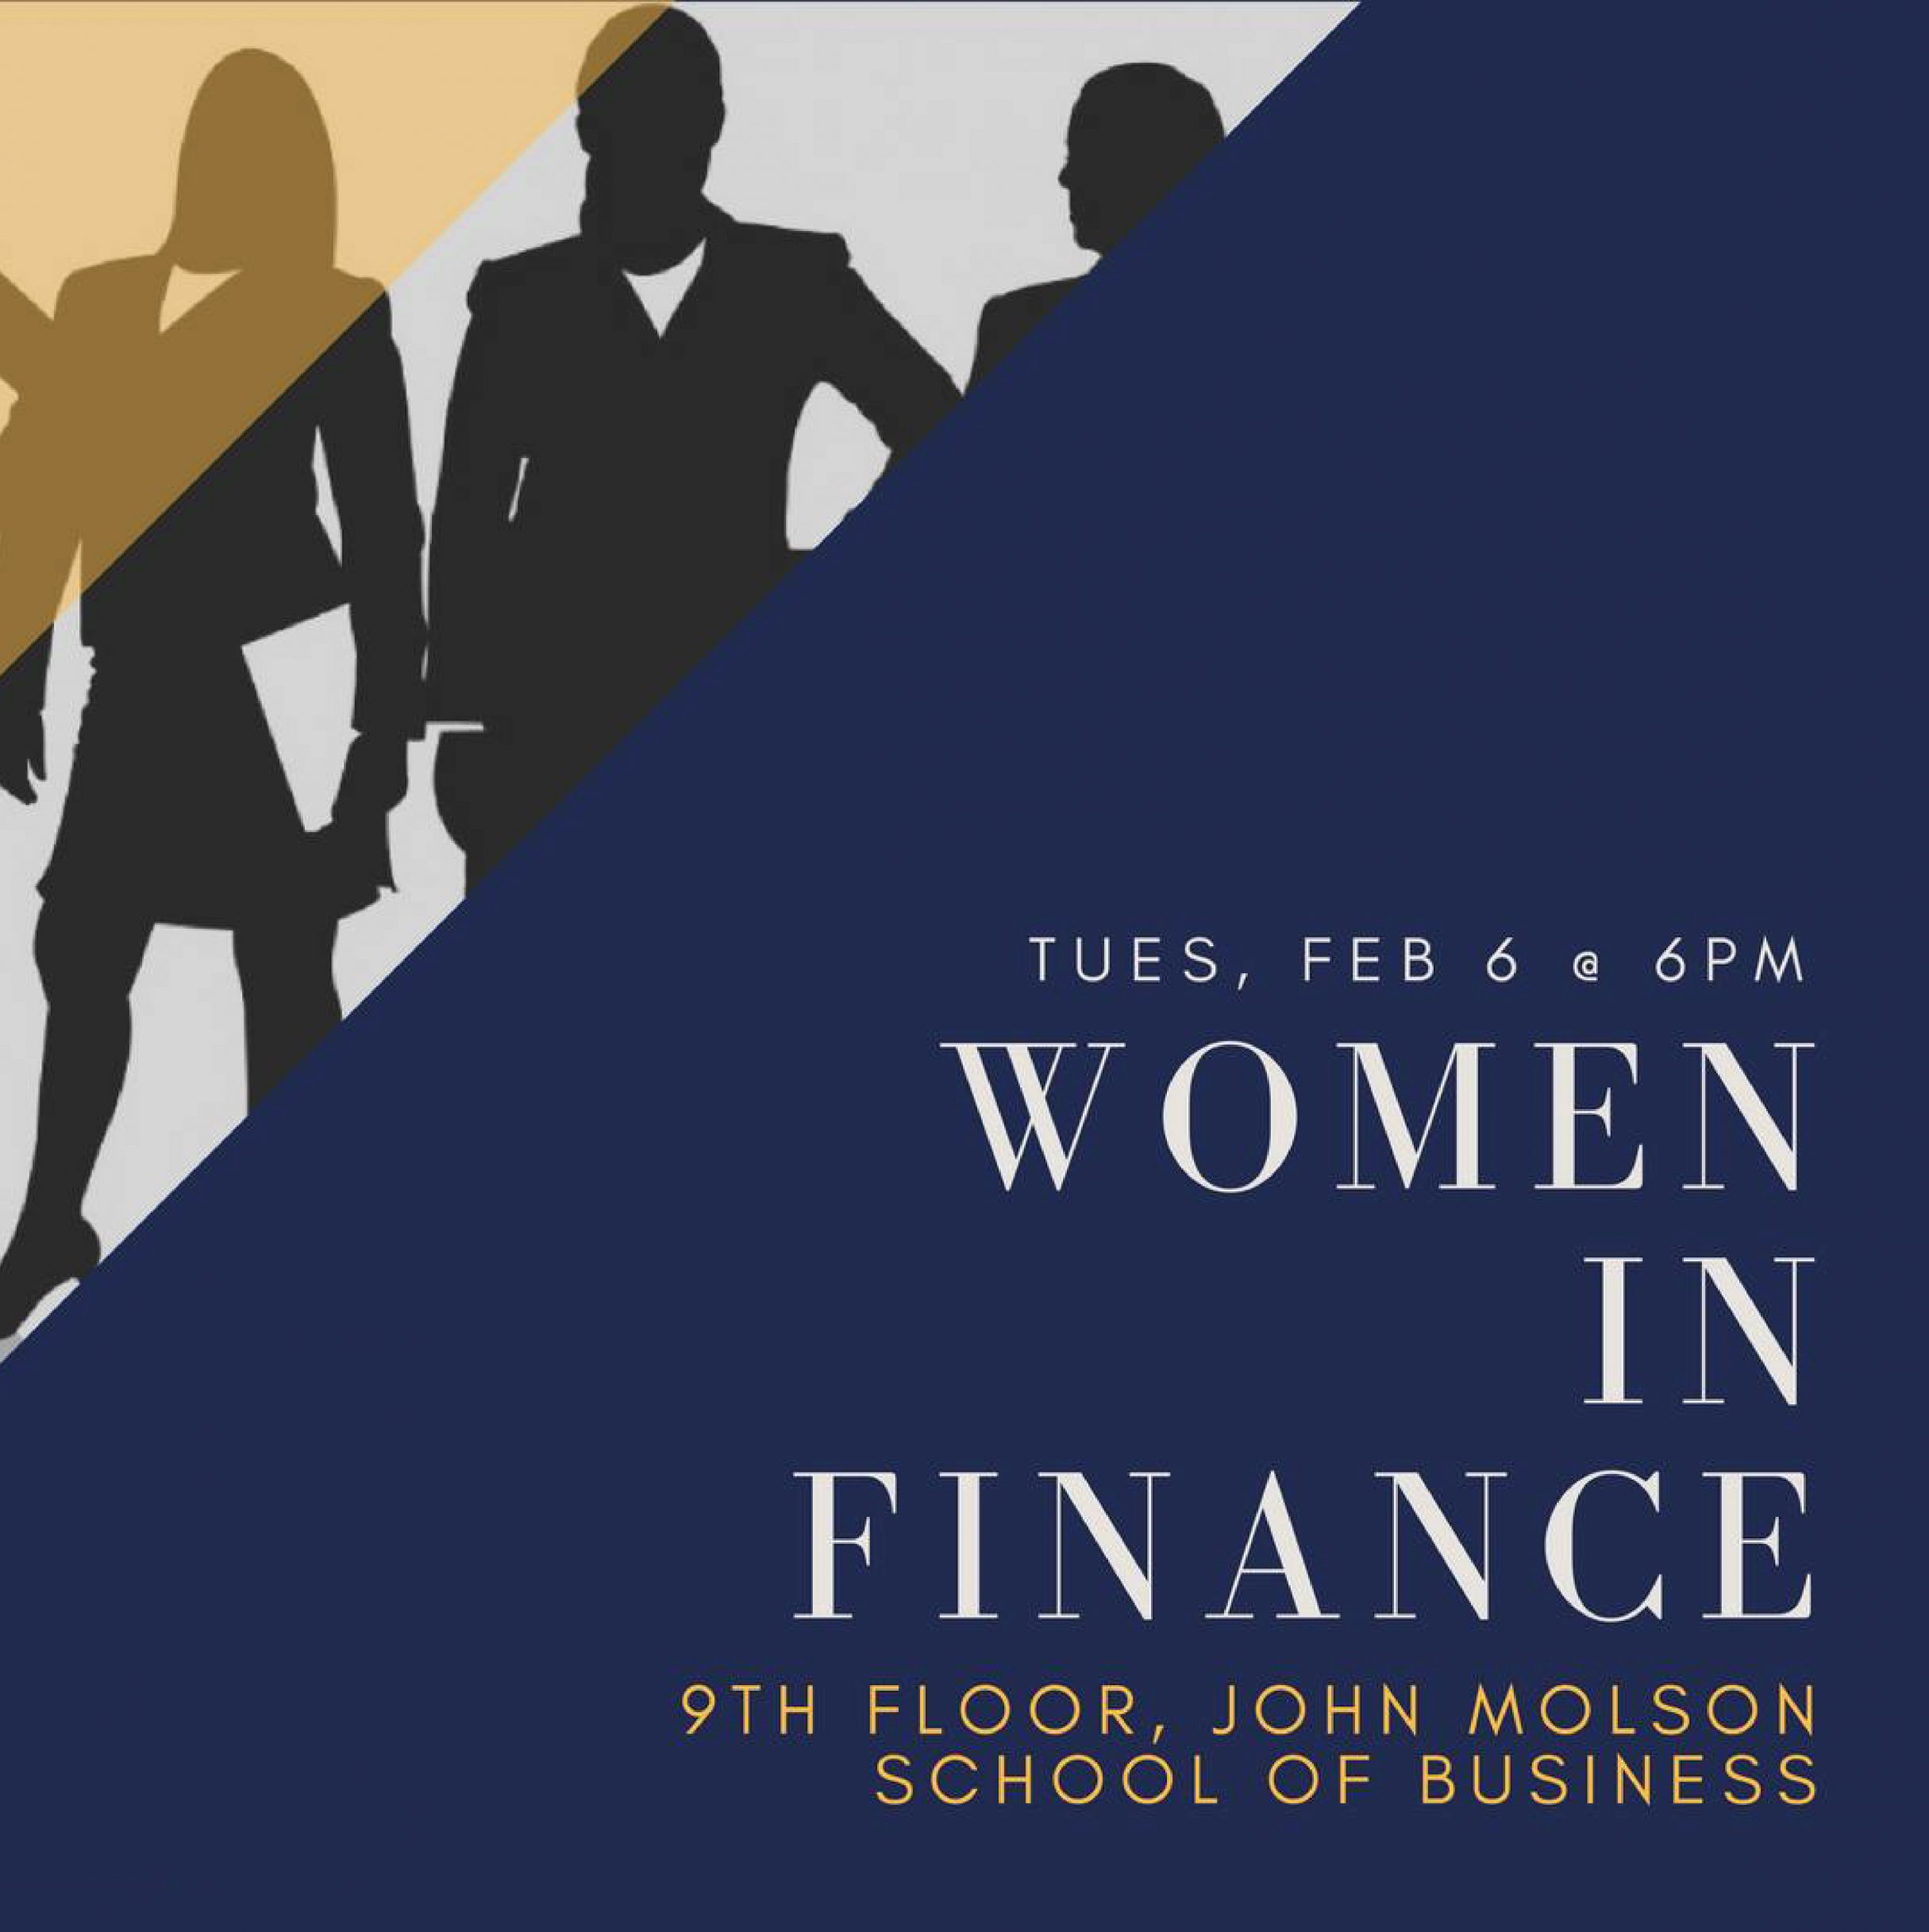 Women in Finance JMWL x FISA